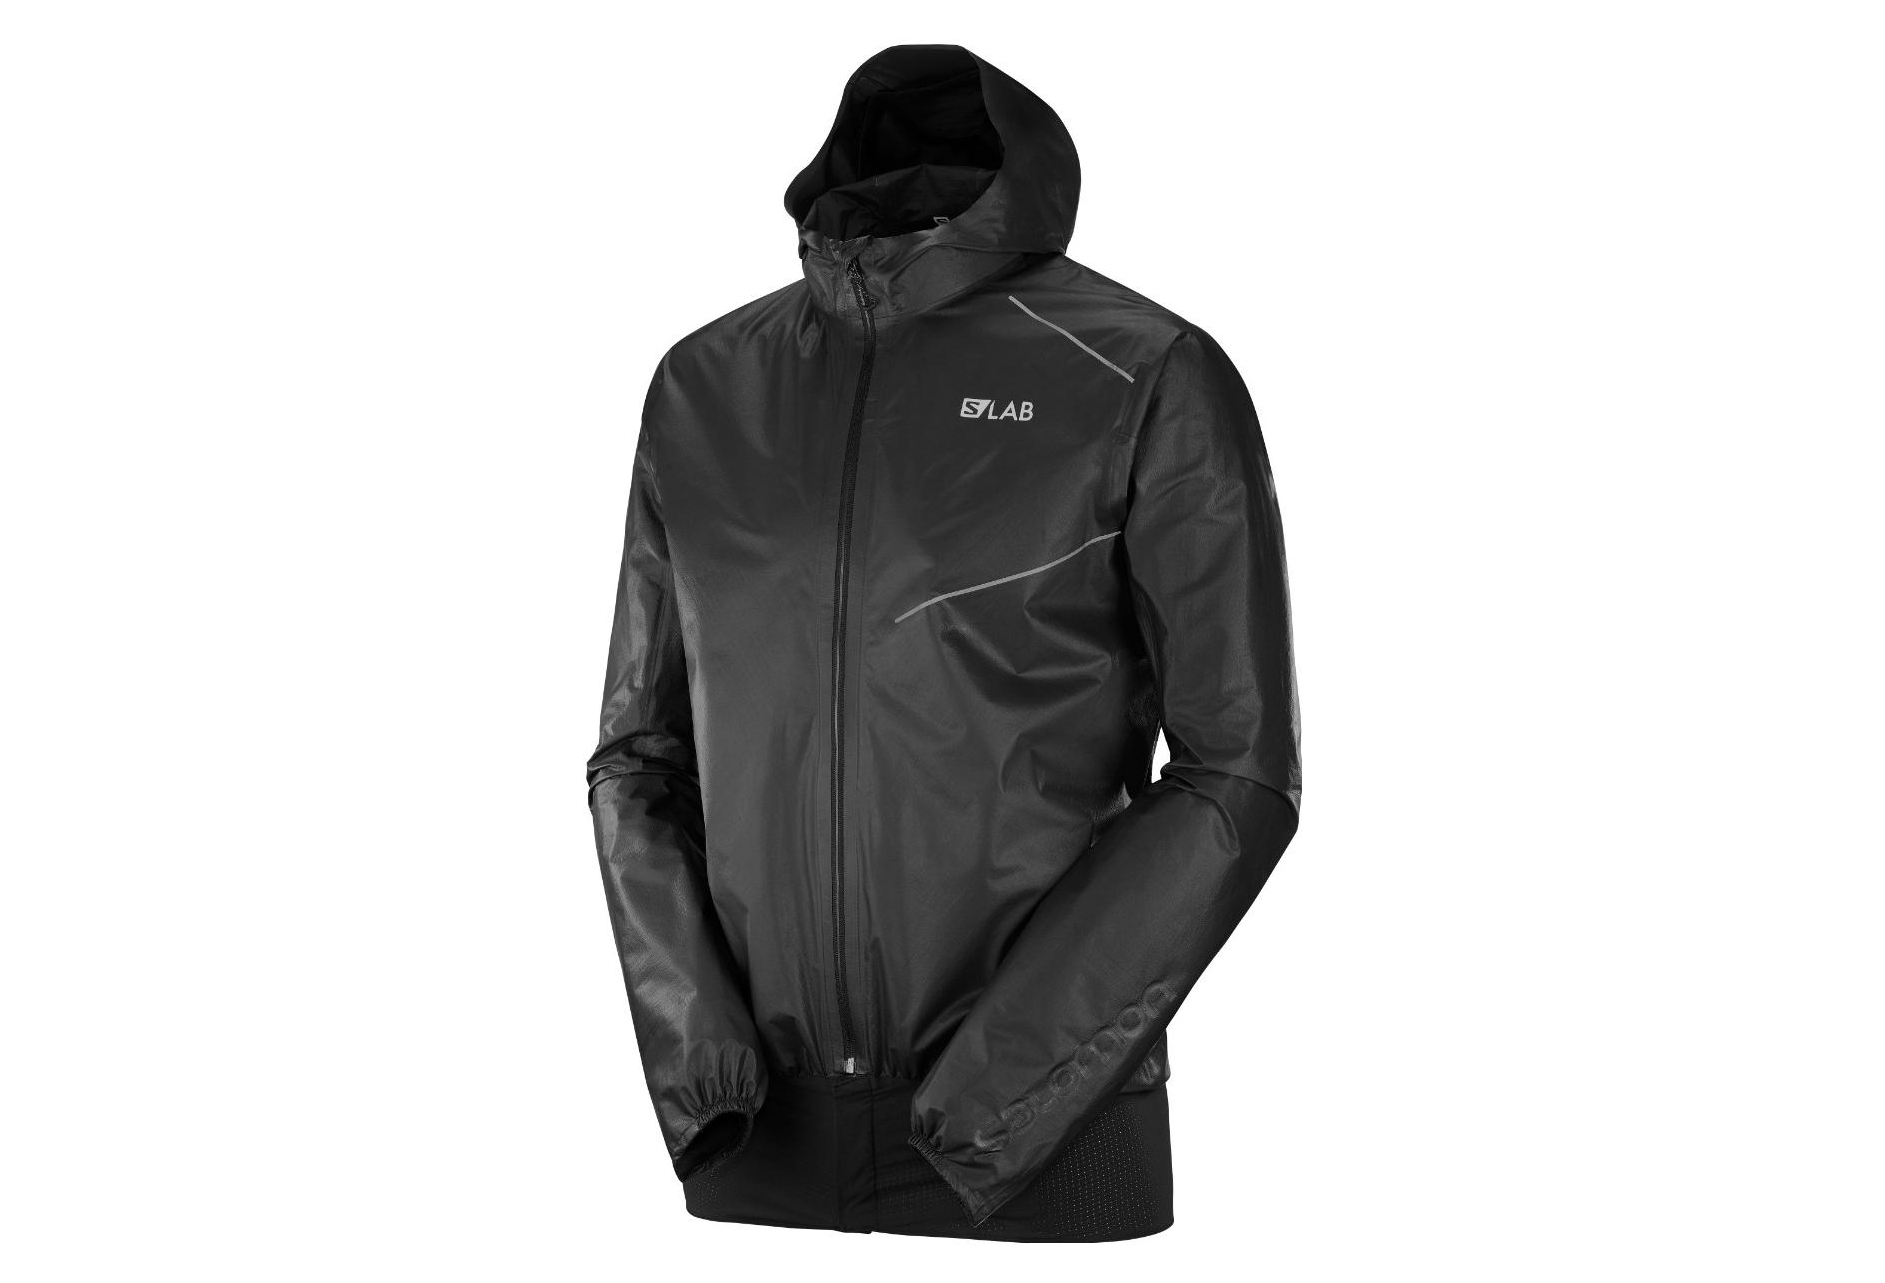 Salomon S LAB MotionFit 360 GTX Black Men's Waterproof Jacket